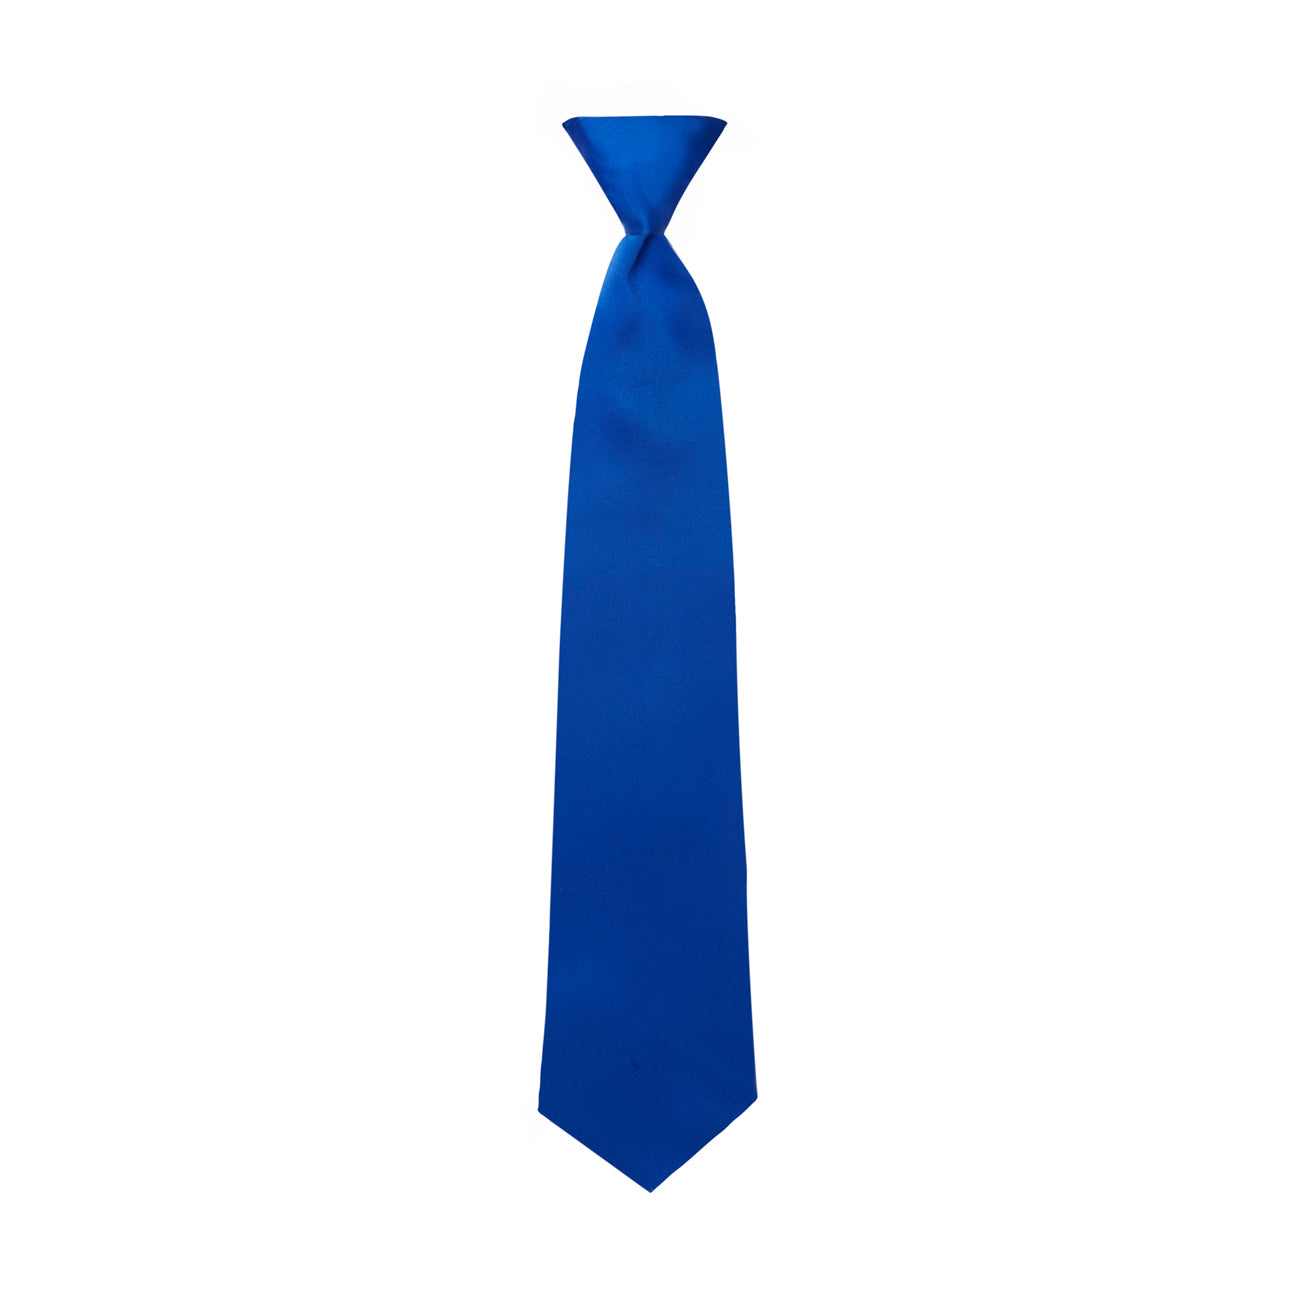 Solid Pre-Tied Long Tie (28 colors available)